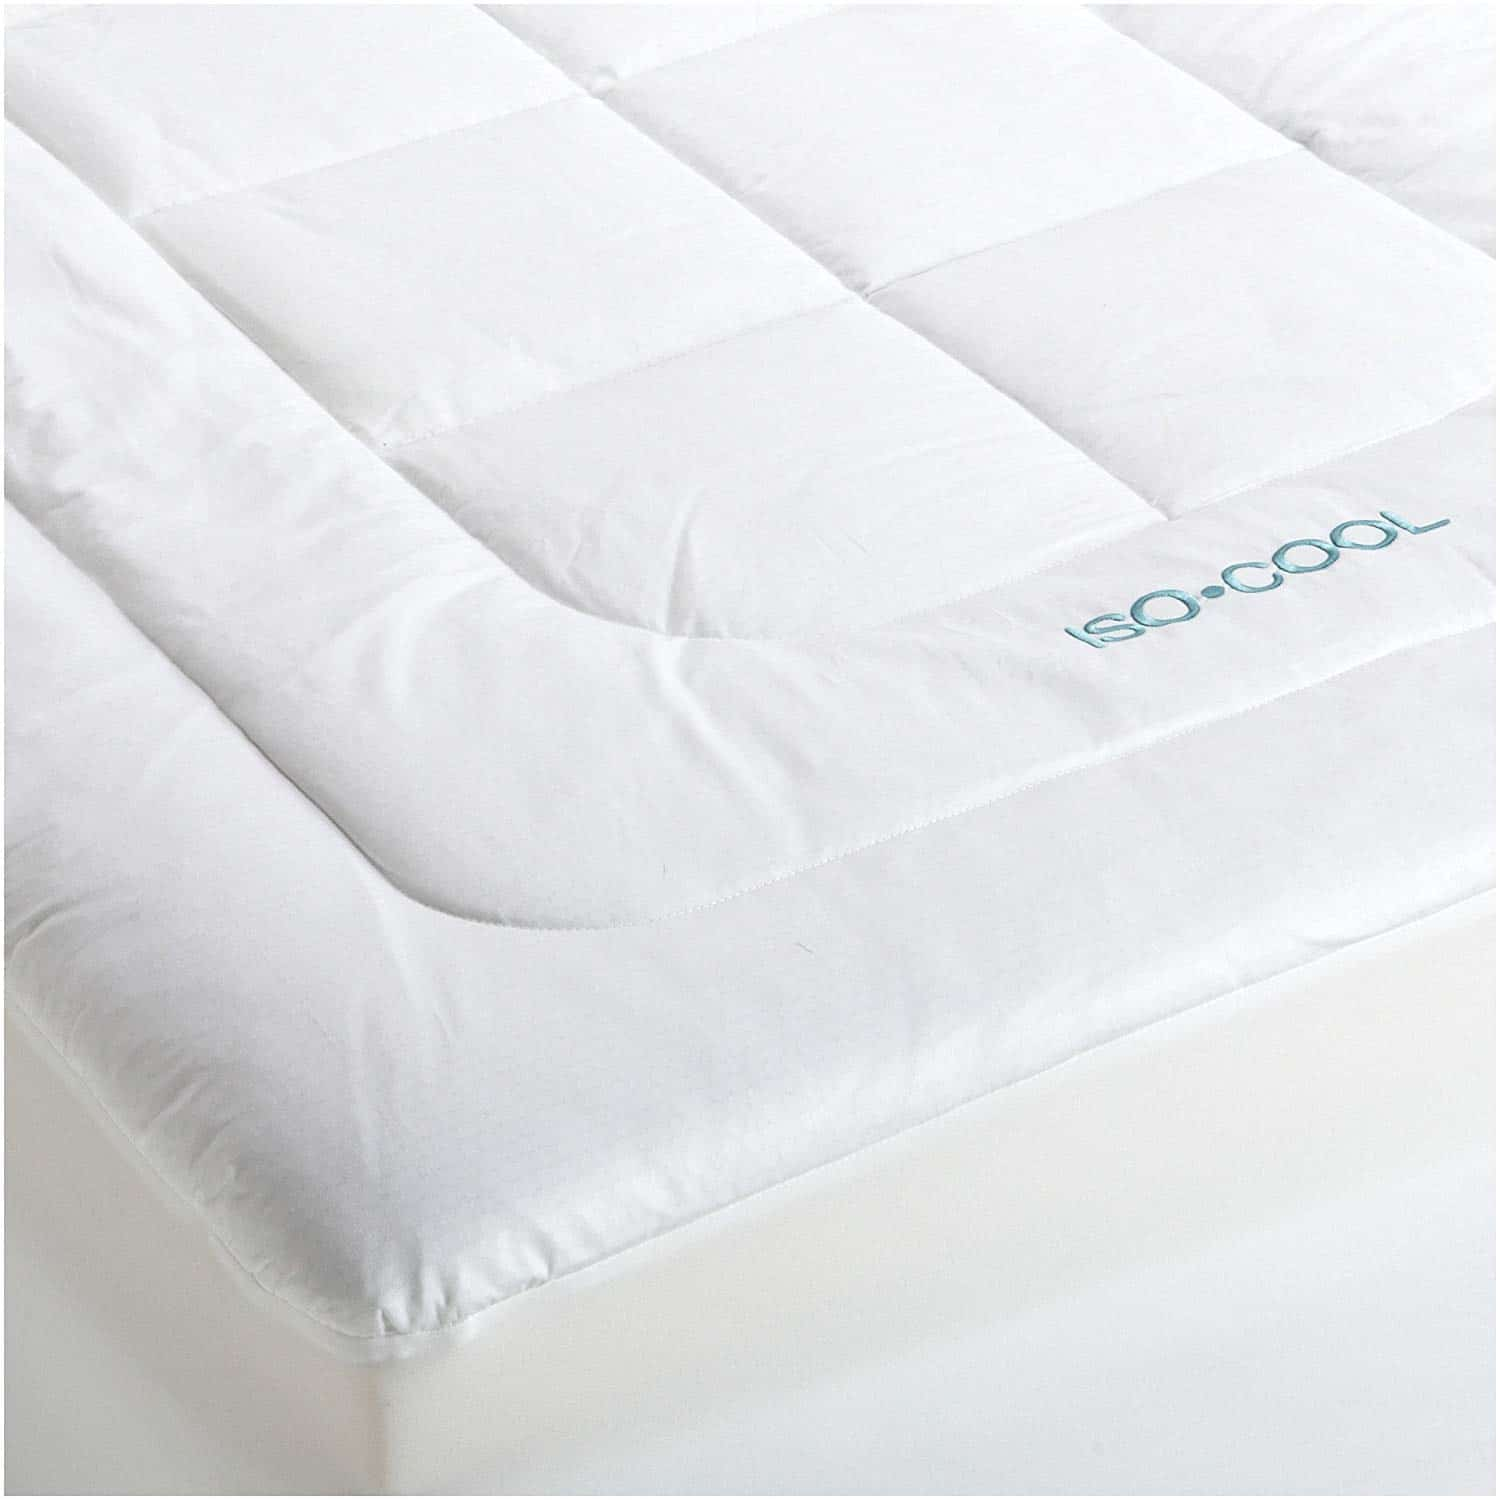 Bamboo Mattress Topper Review Best Cooling Mattress Pad Topper Reviews 2019 Top 5 Picks